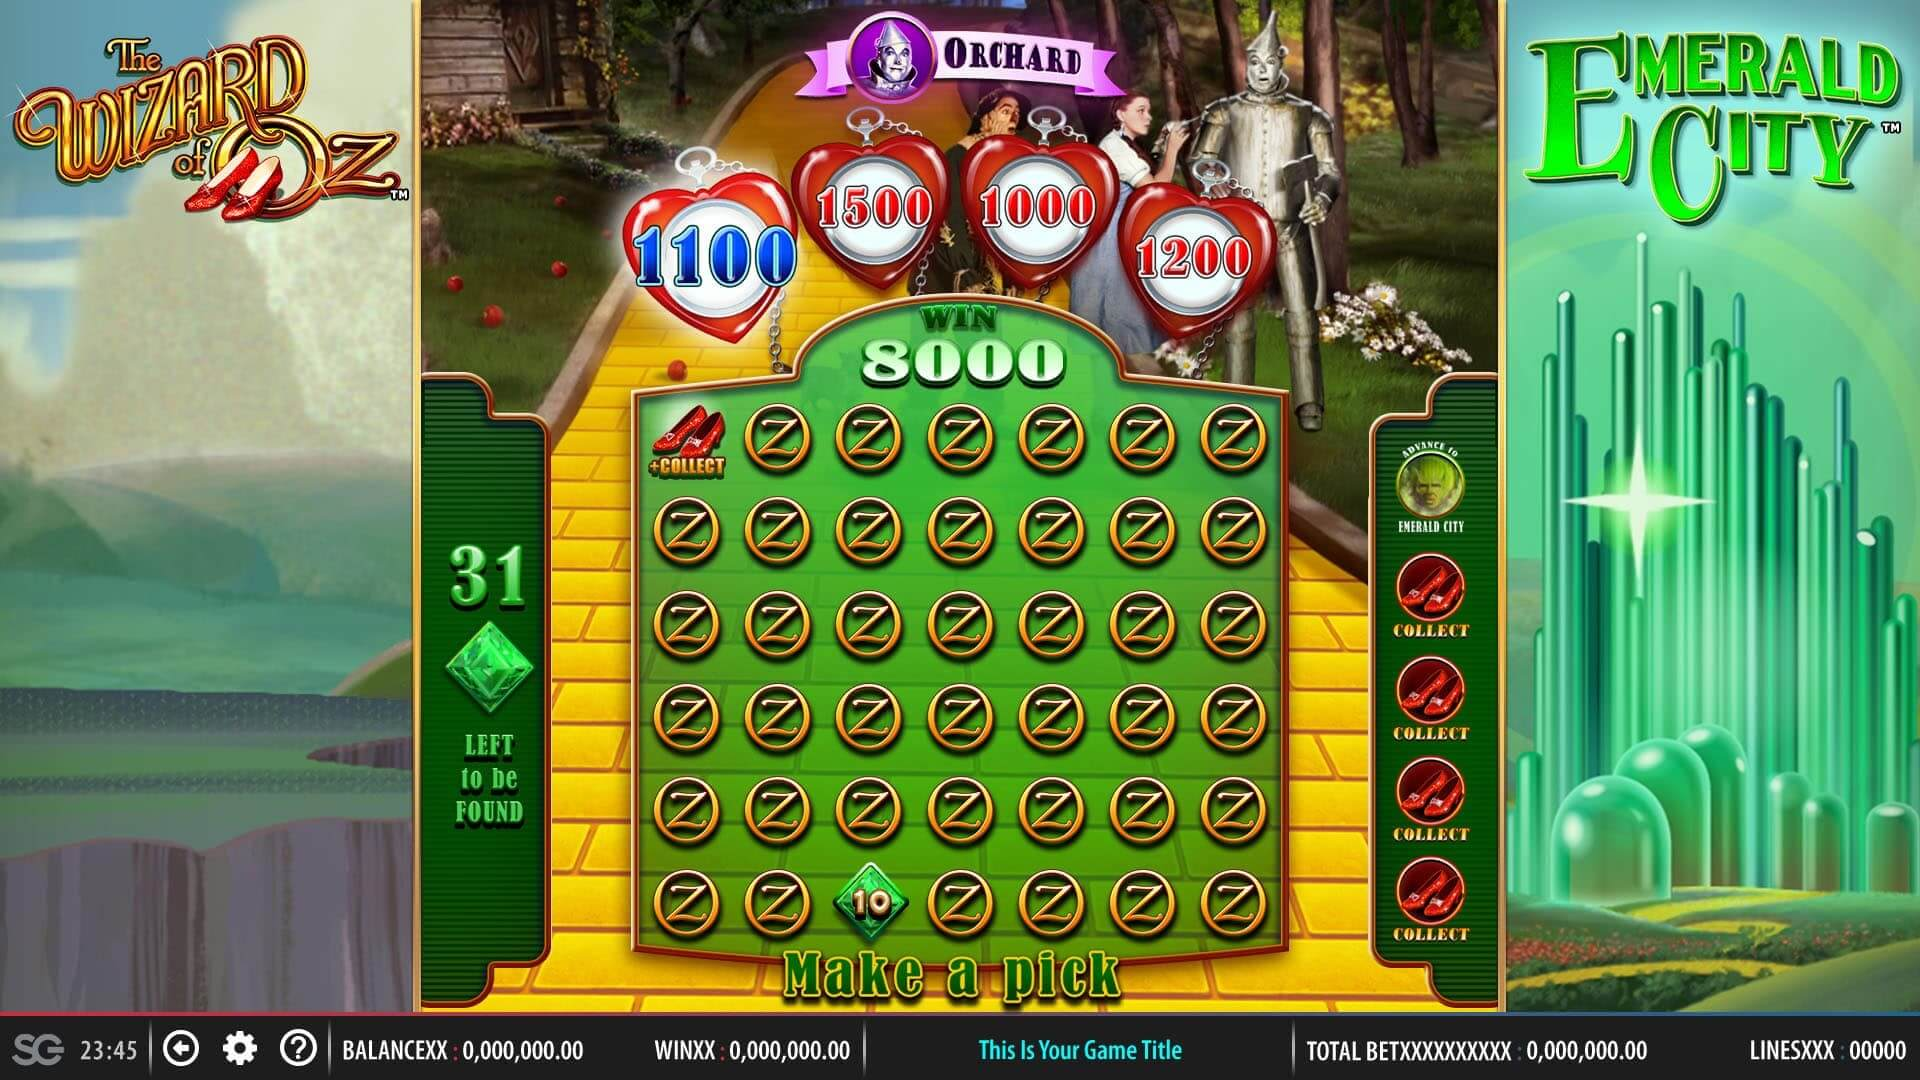 Tin Man bonus game from Wizard of Oz Emerald City online slot